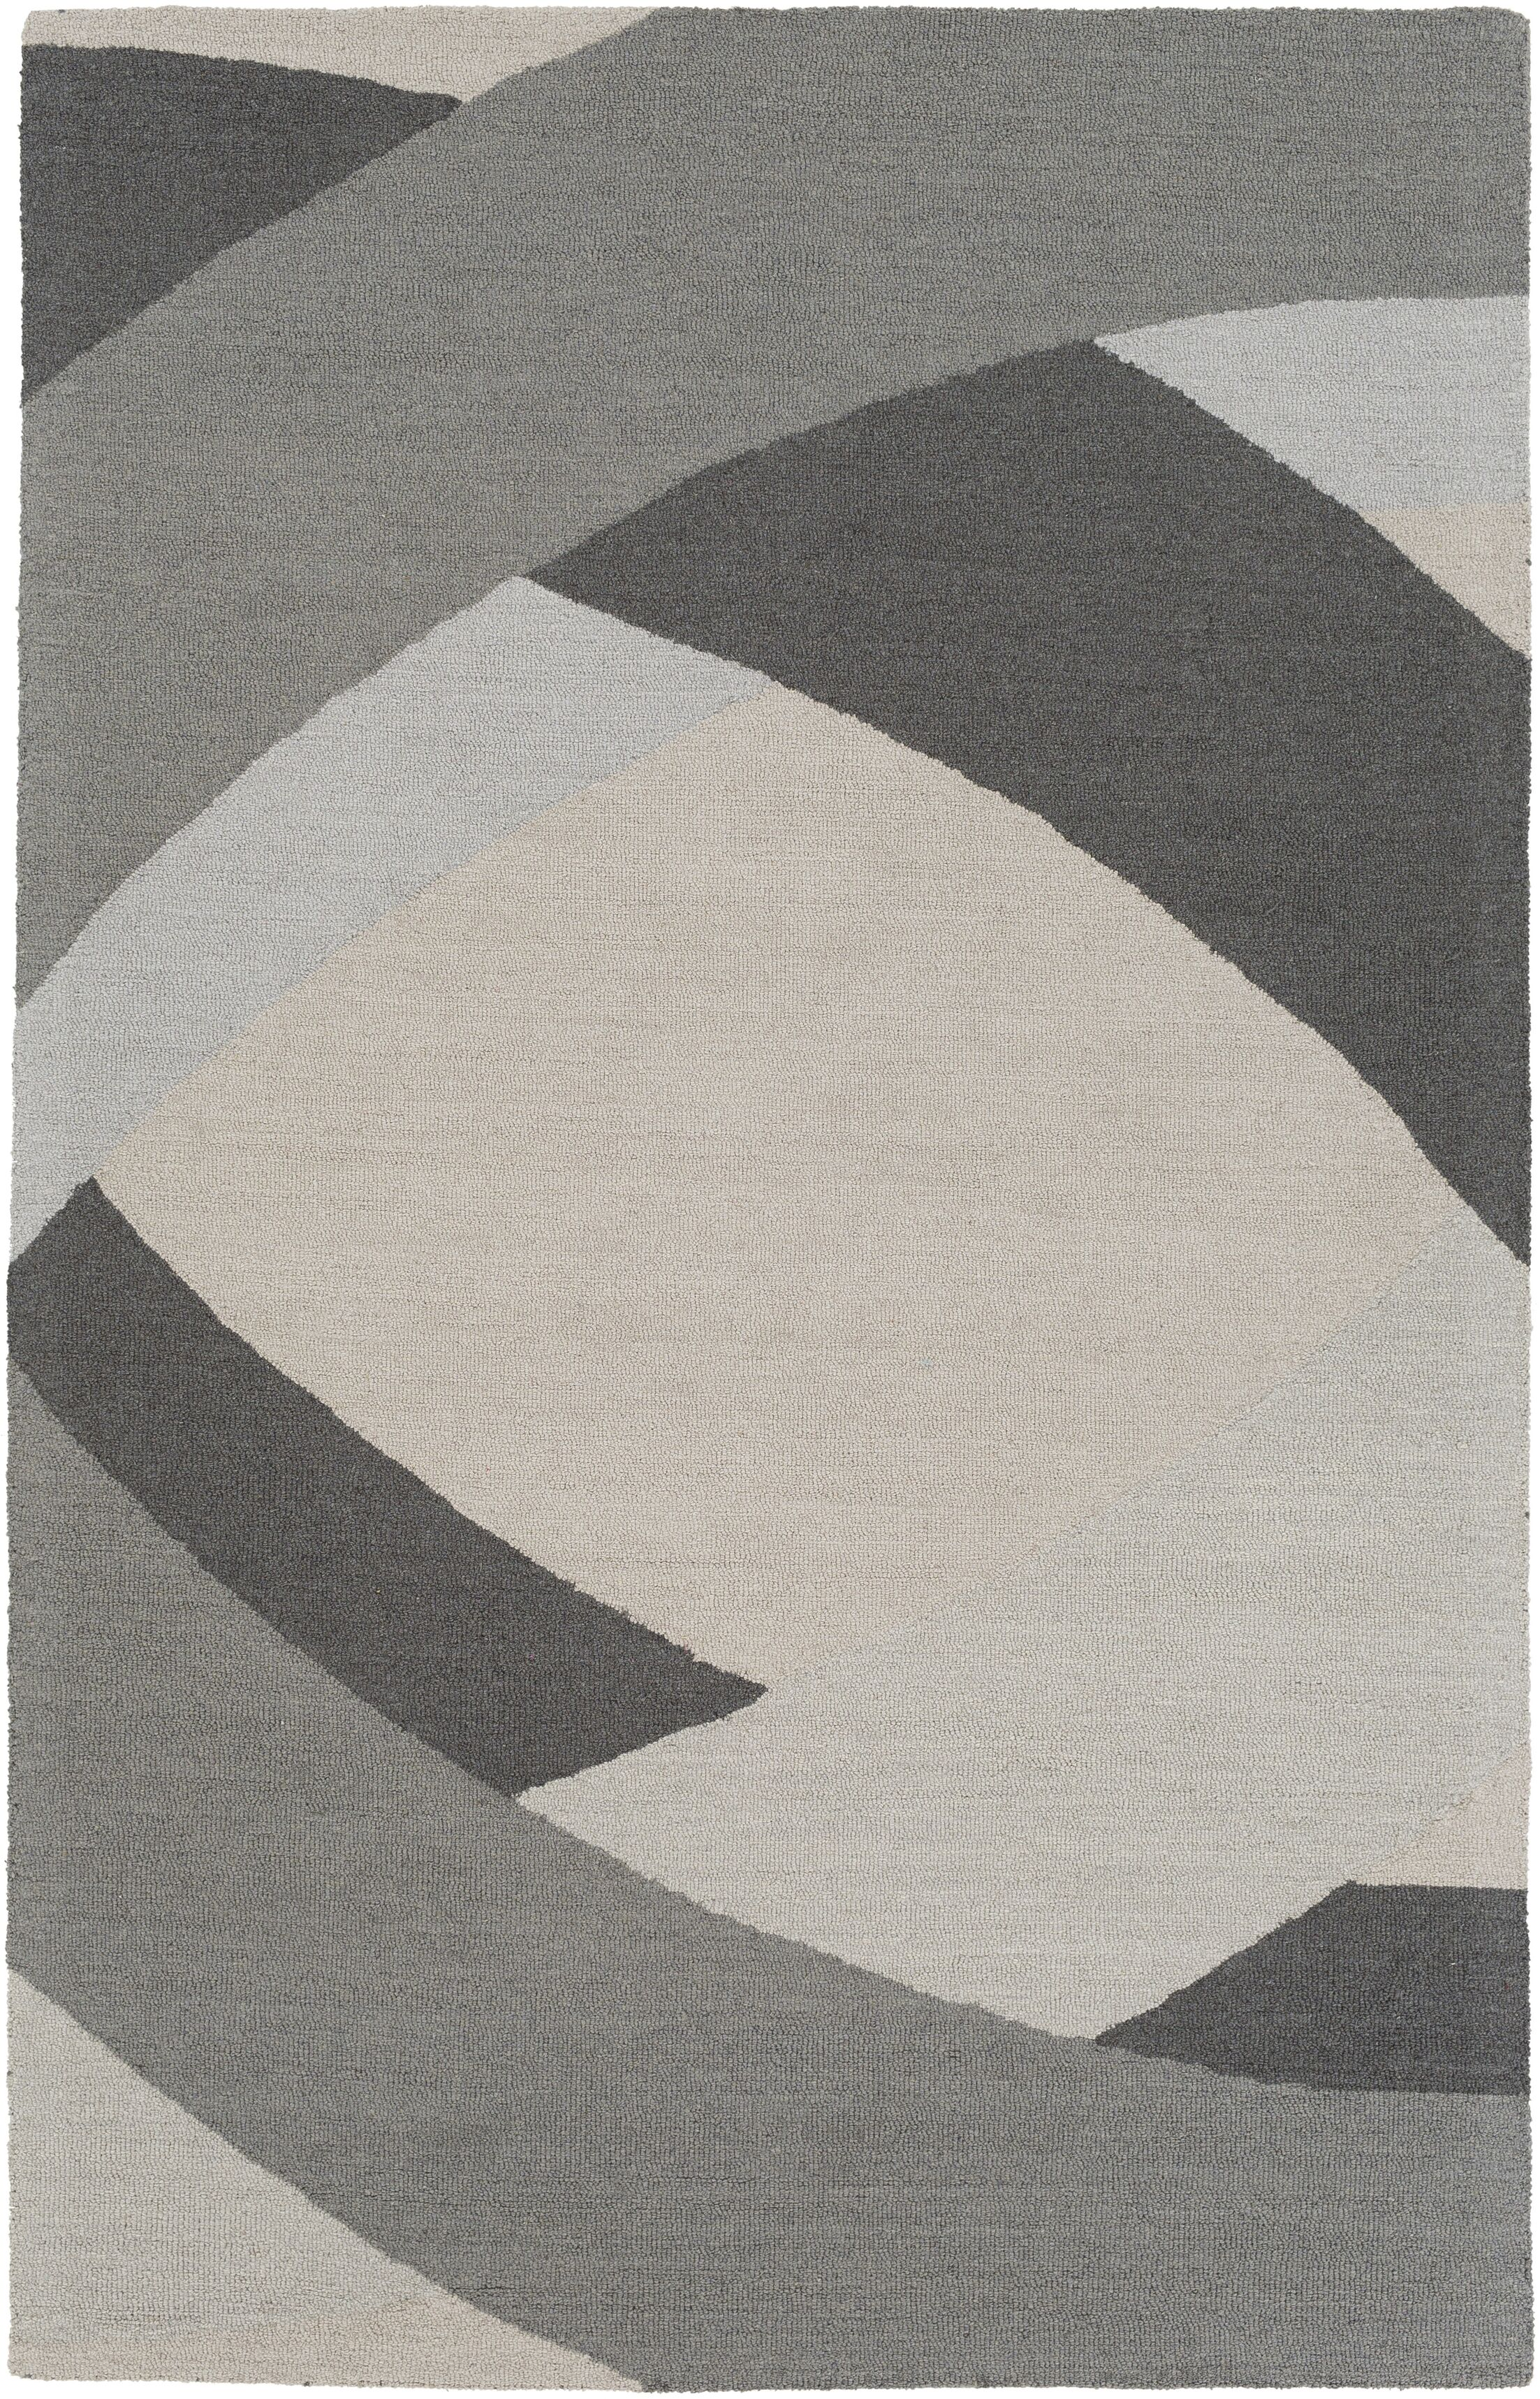 Oswaldo Hand Woven Wool Gray/Light Blue Area Rug Rug Size: Rectangle 8' x 10'